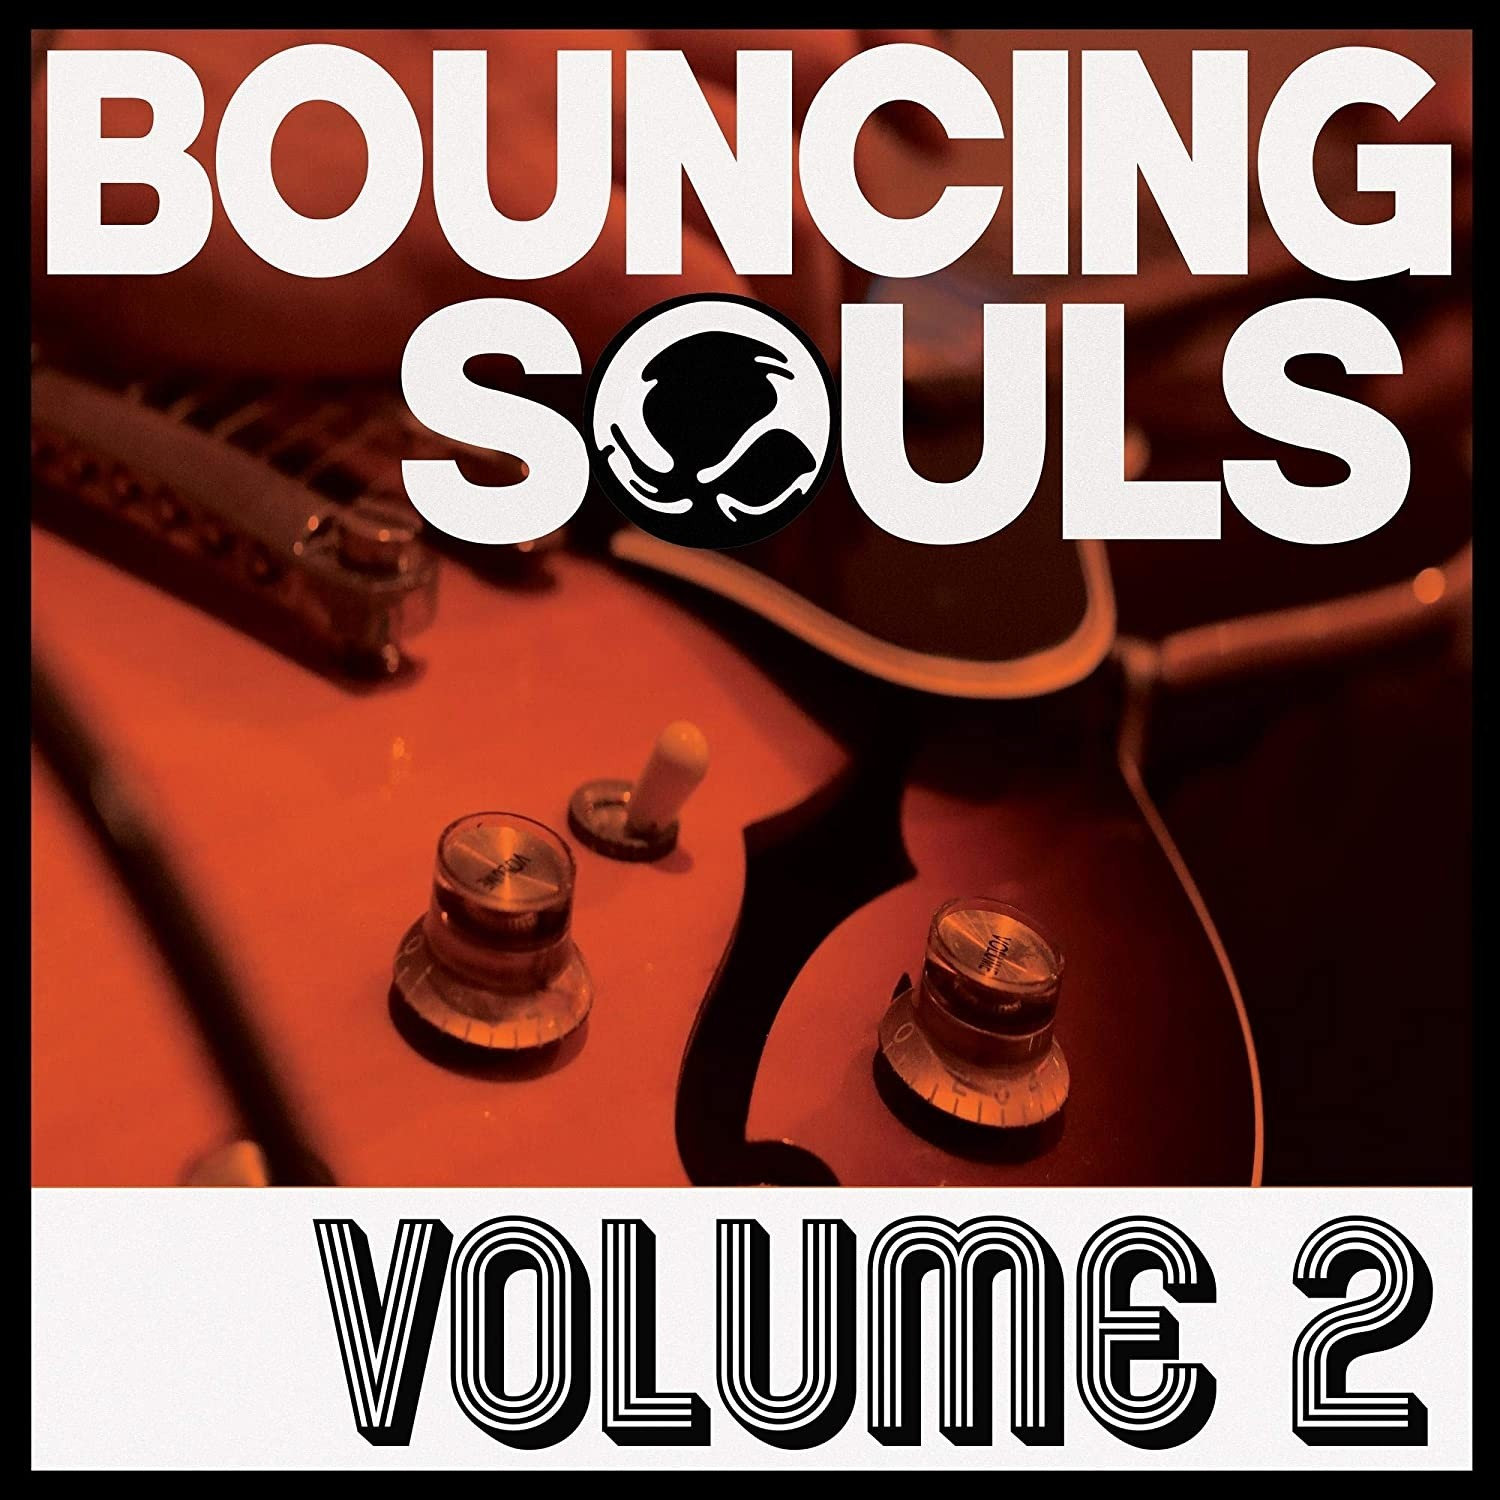 The Bouncing Souls - Volume 2 Vinyl LP